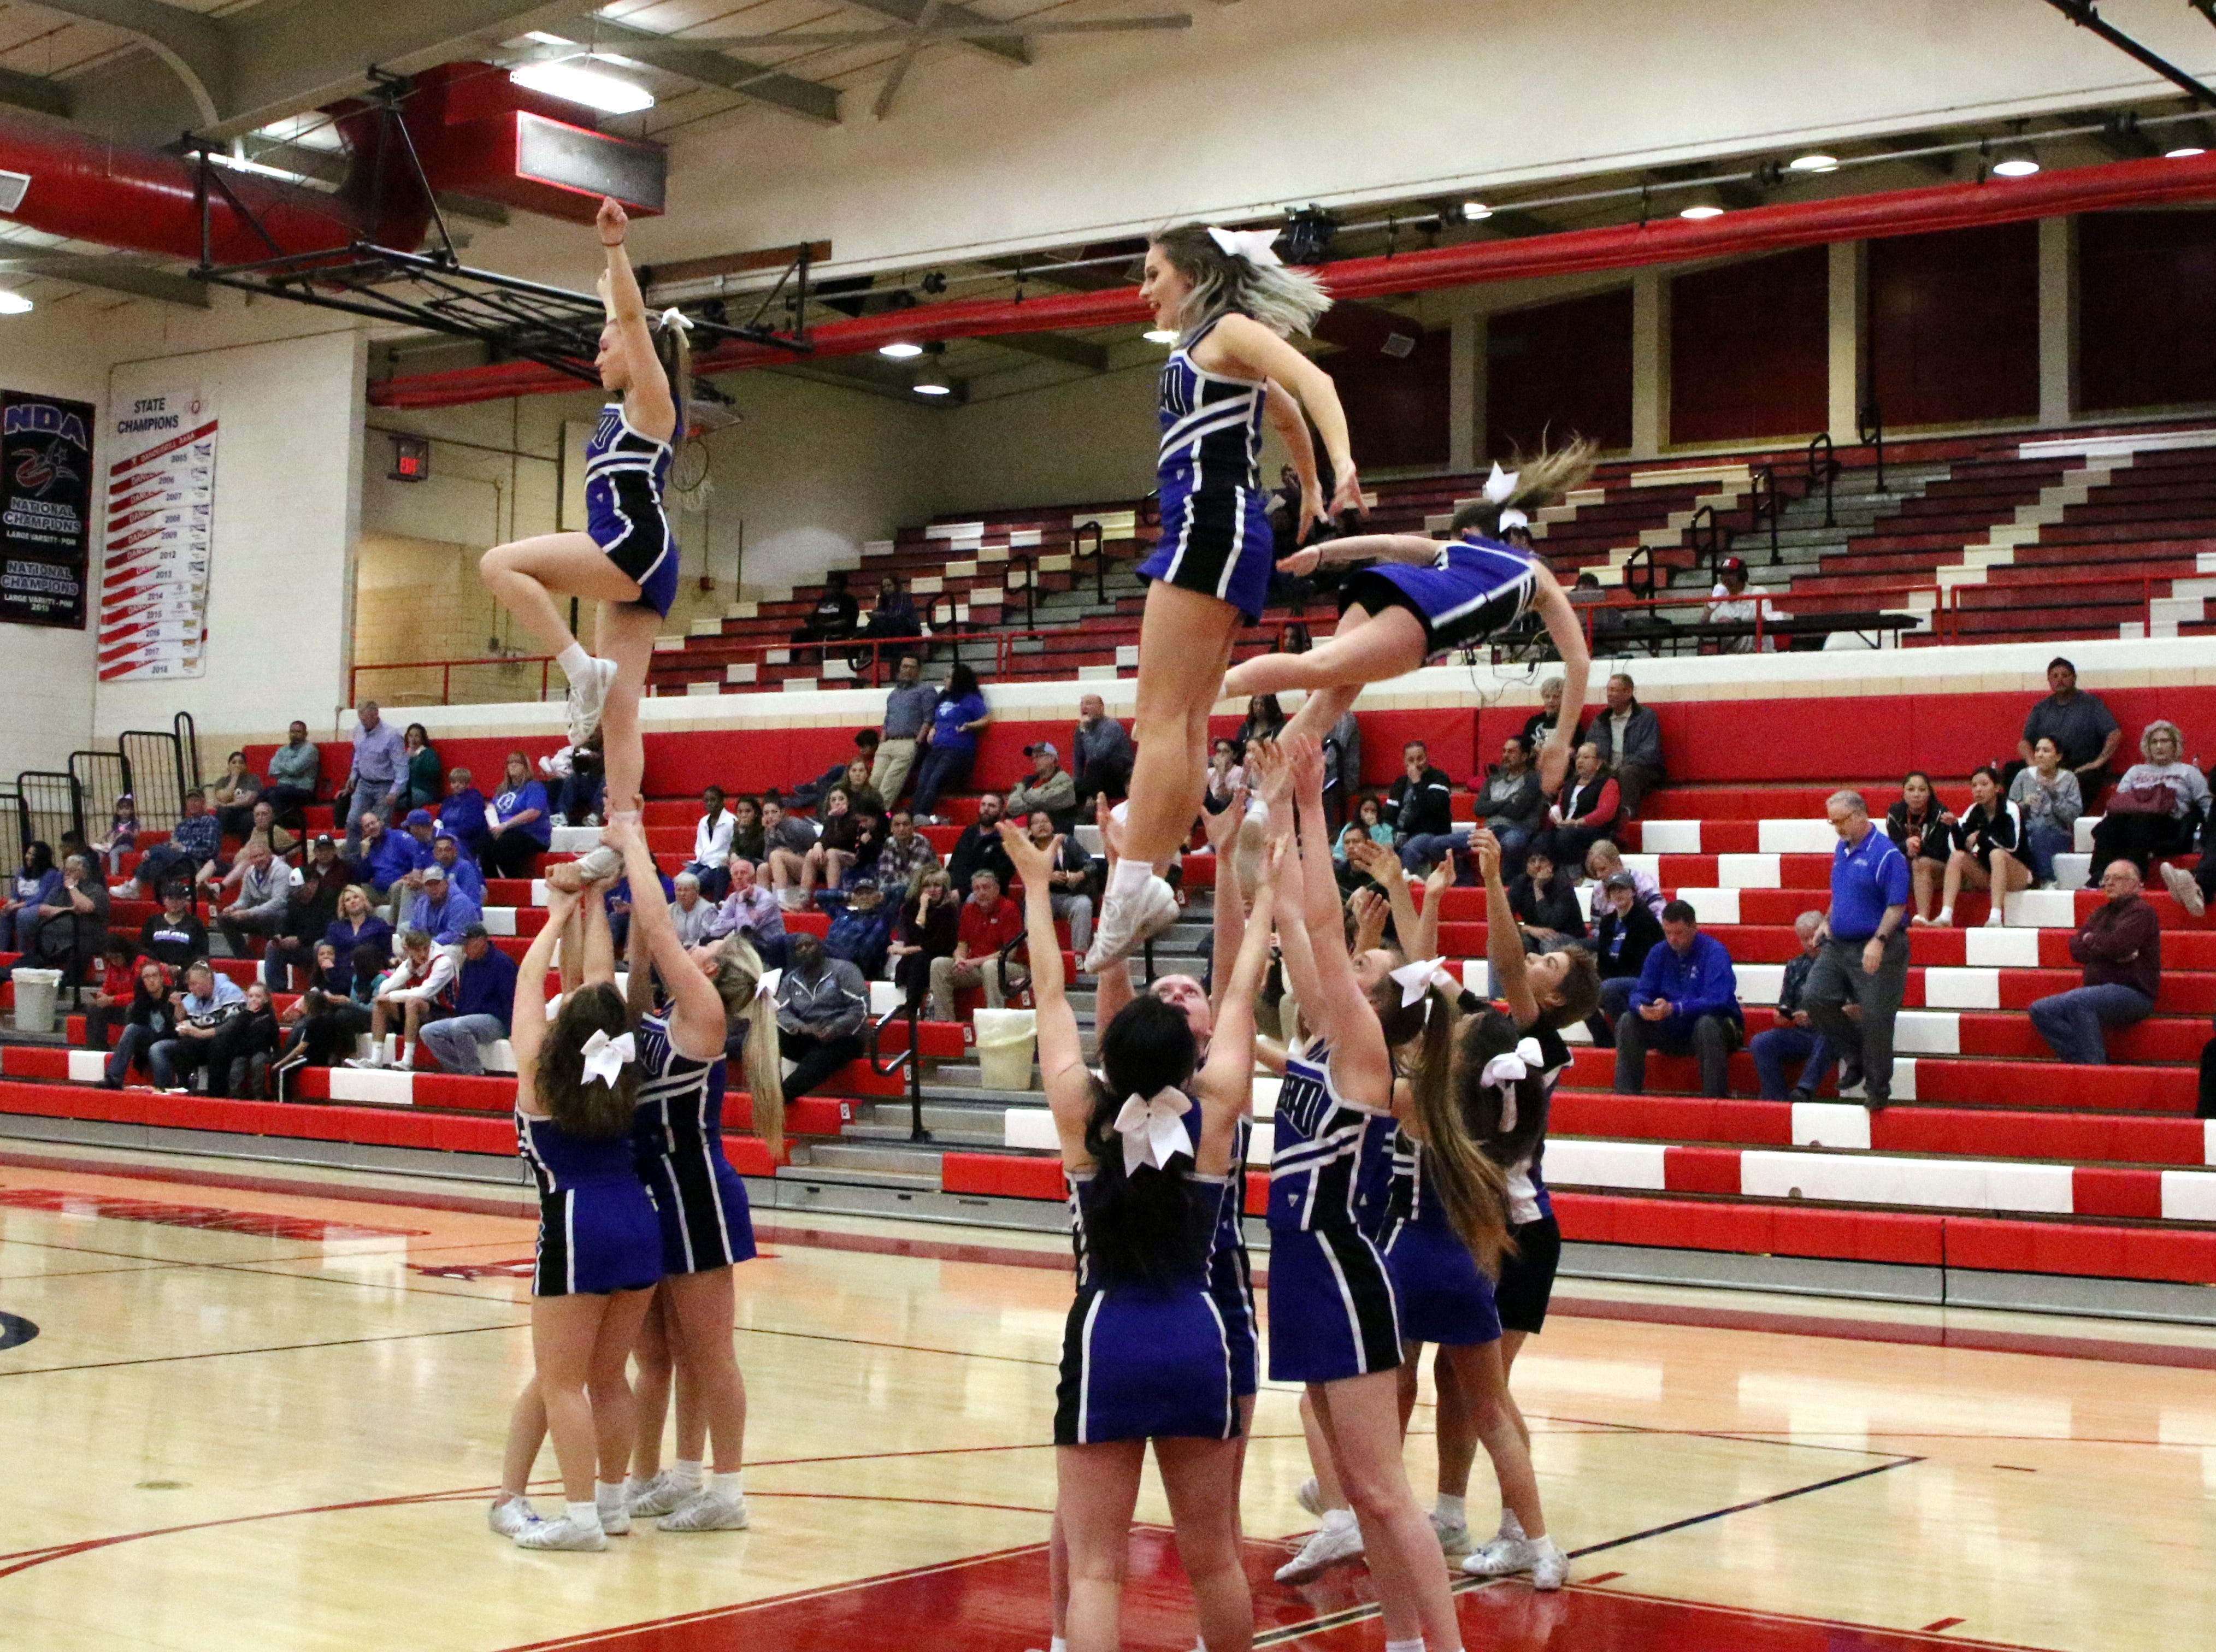 Carlsbad's cheerleaders complete a routine during Monday's game against Hobbs.